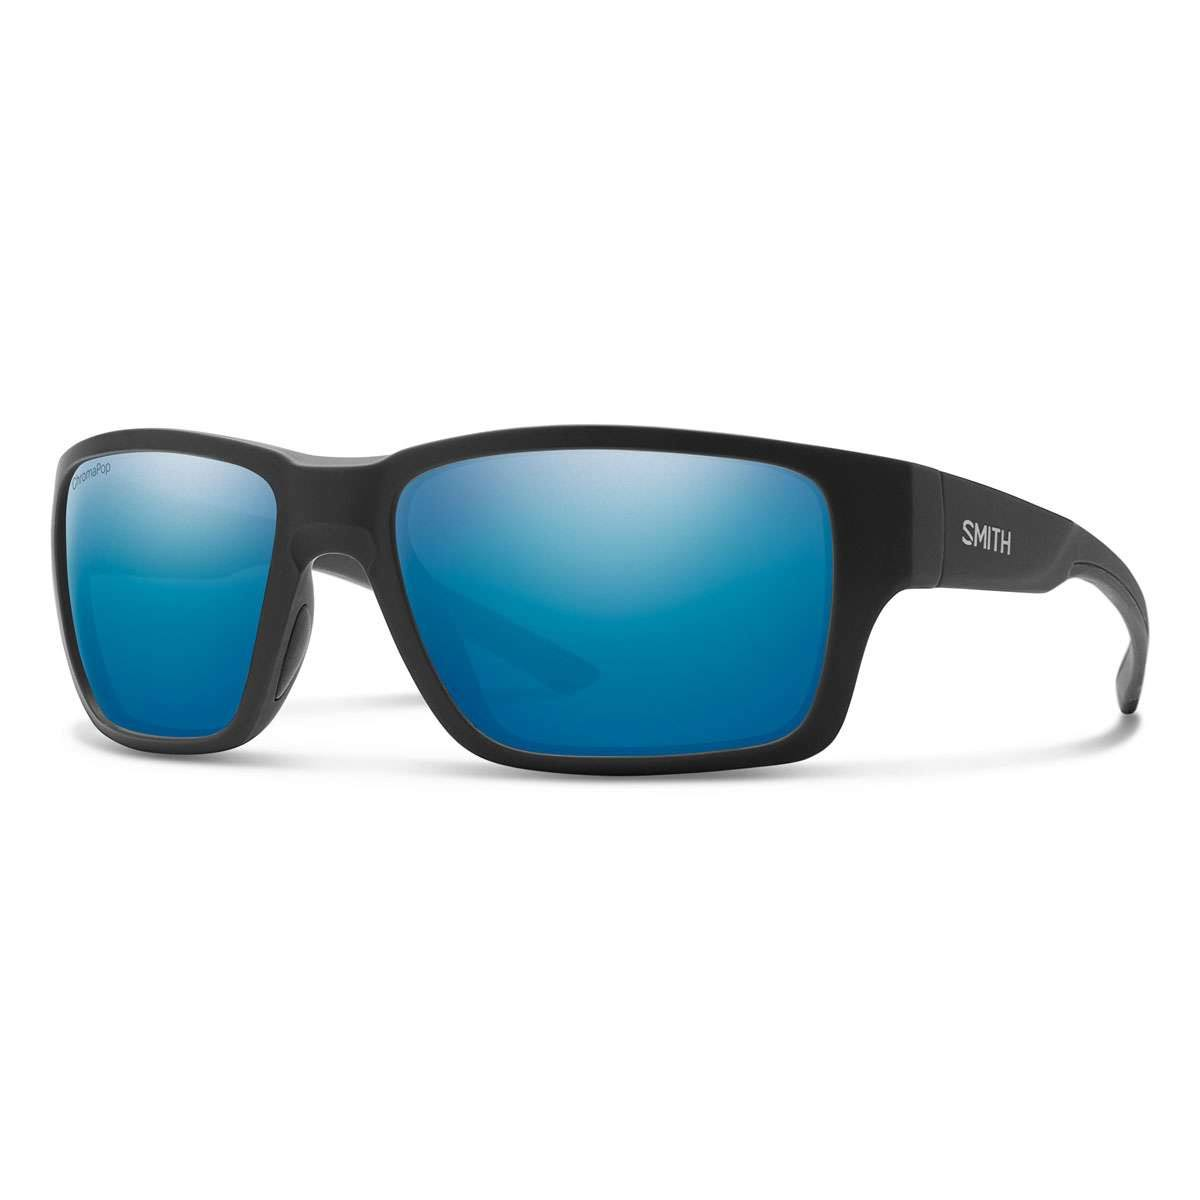 Smith Outback 0124-QG Matte Black Silver Rectangular Sunglasses